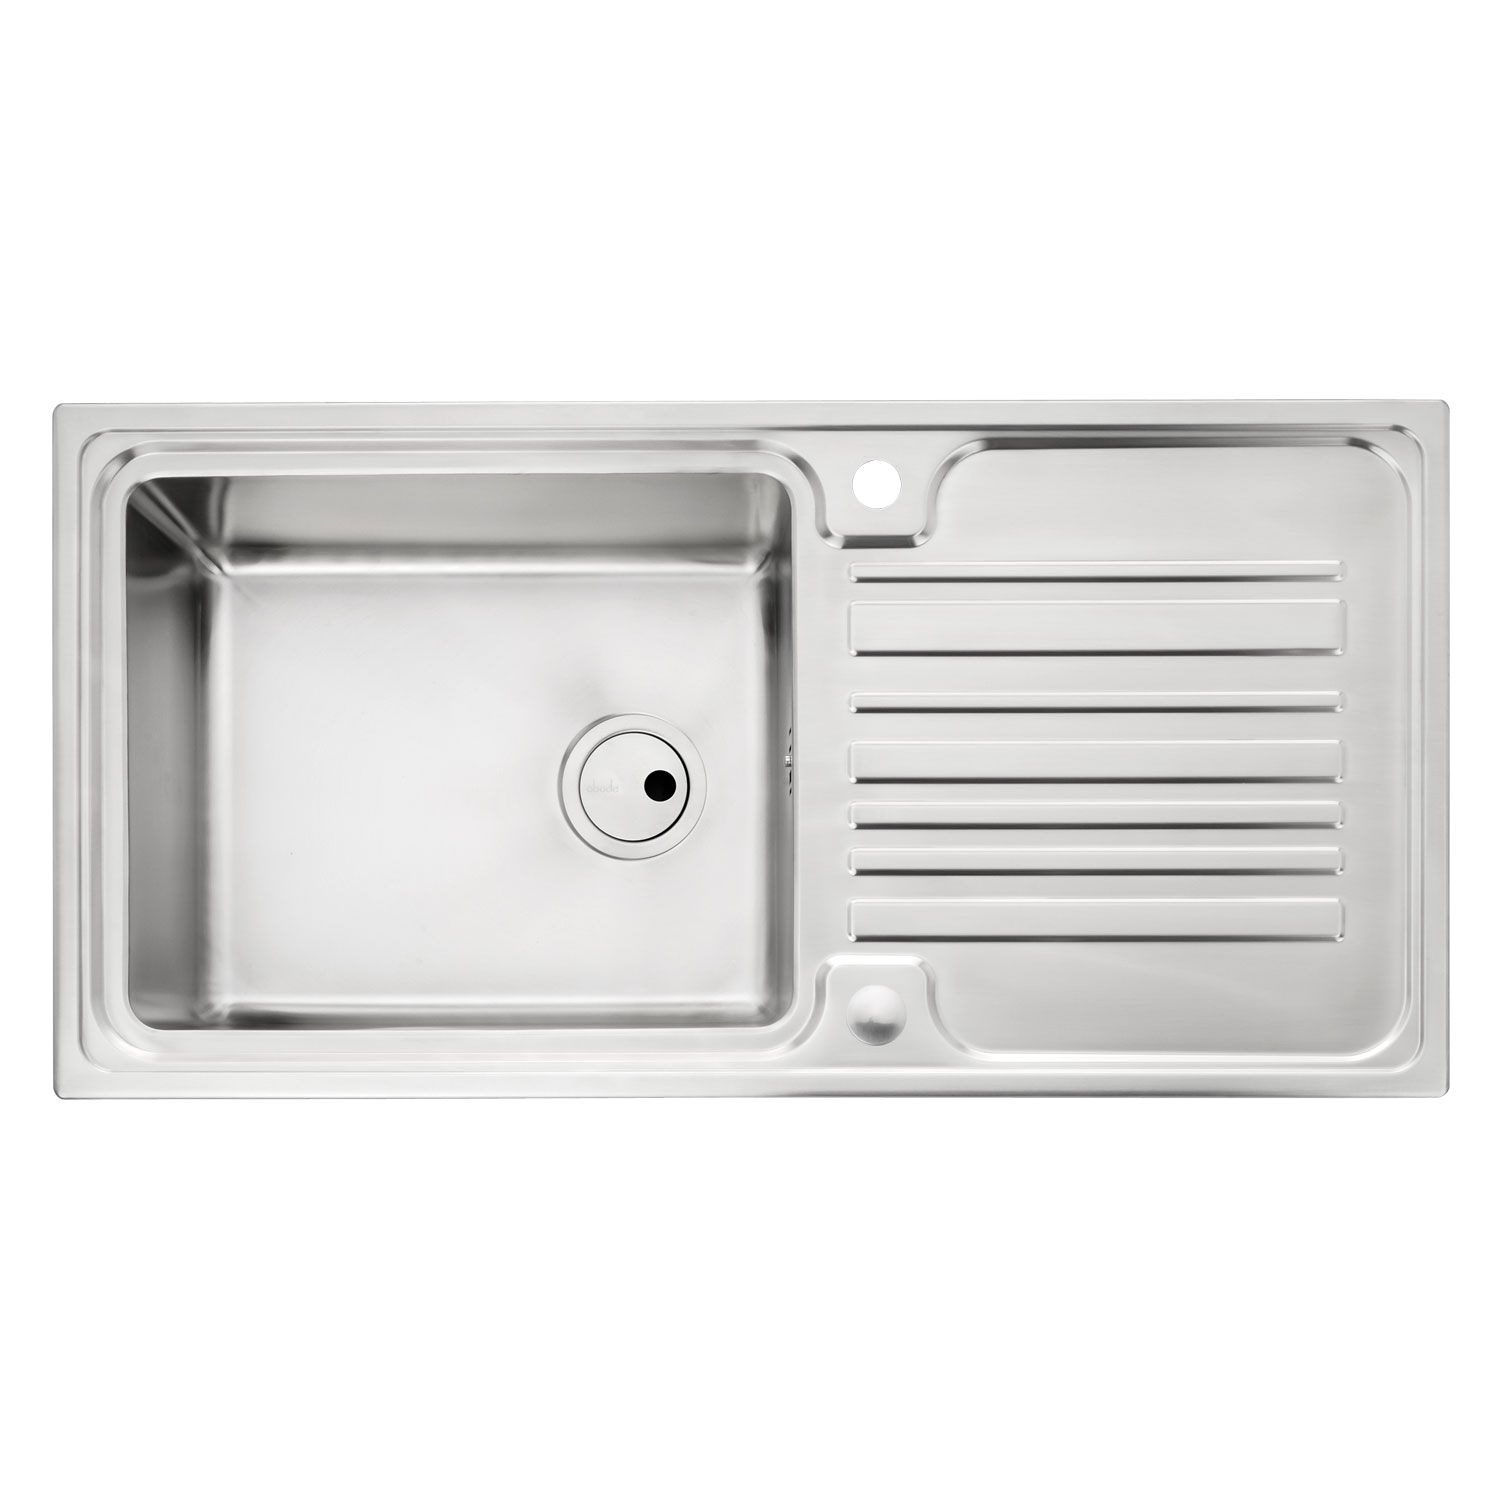 Medium image of apex 1 0 bowl stainless steel kitchen sink